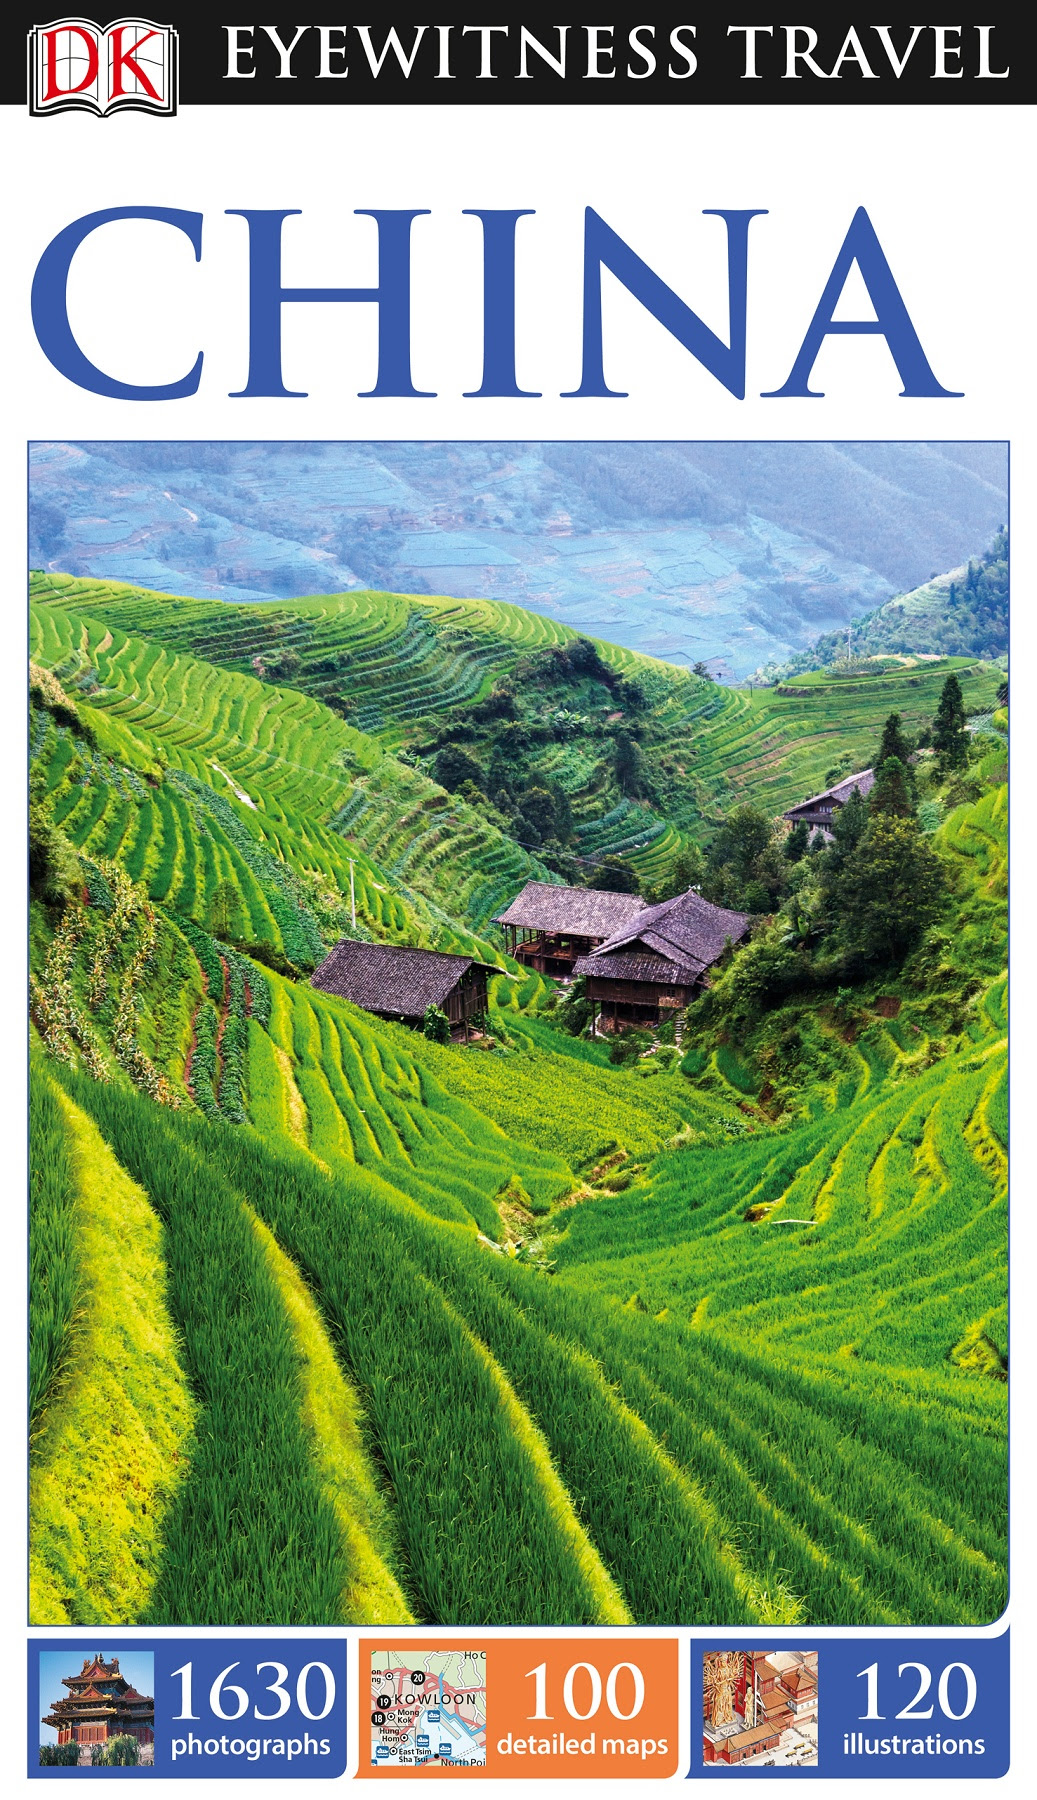 Dk Eyewitness Travel Guide China Pages 451 500 Text Version Anyflip